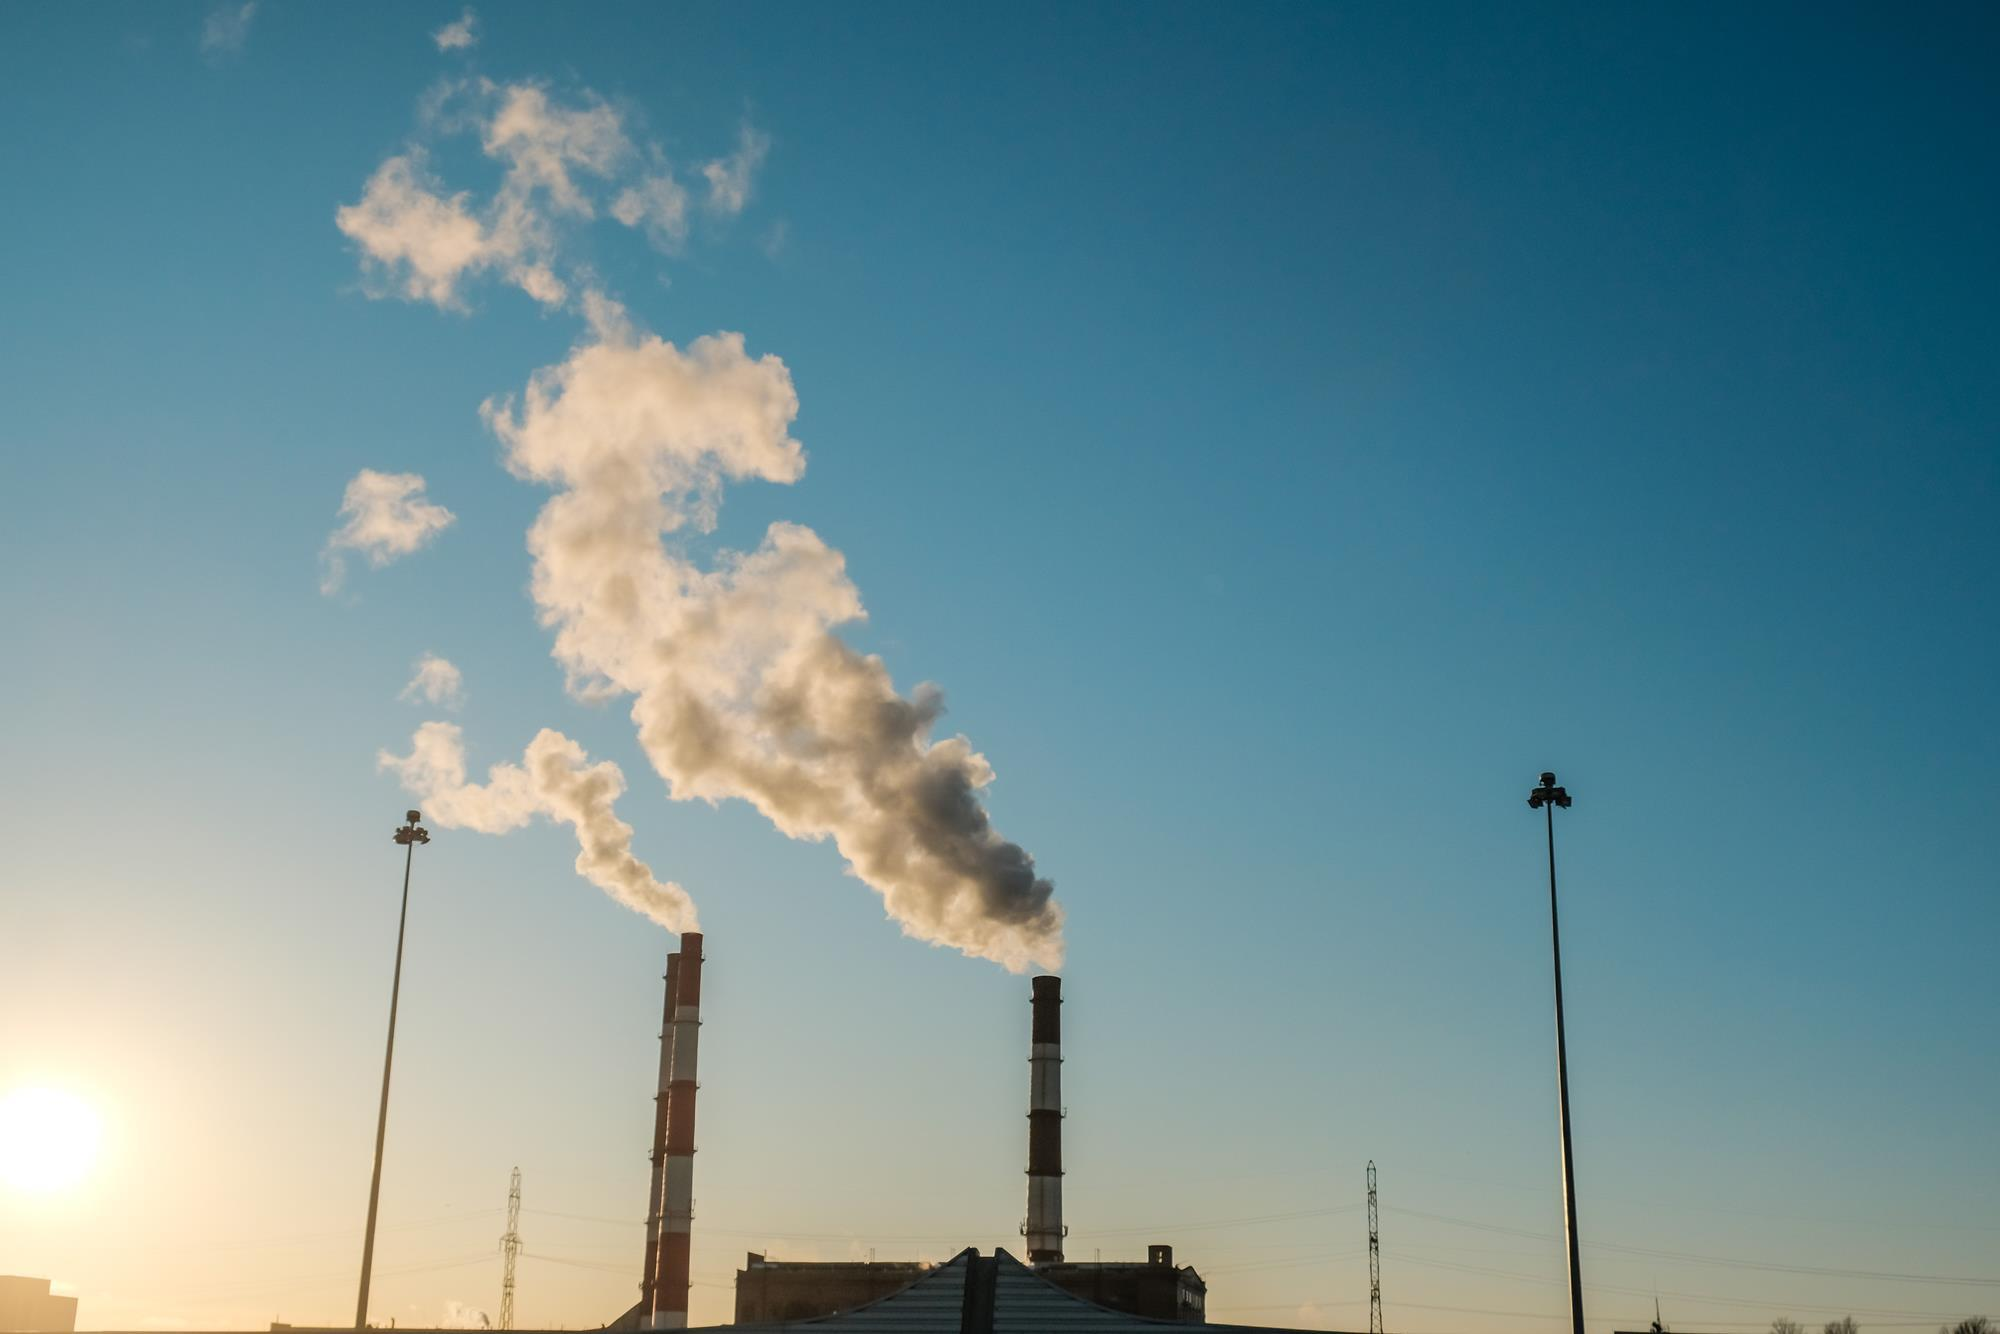 Mechanochemistry shakes up carbon capture with simple way to trap gas